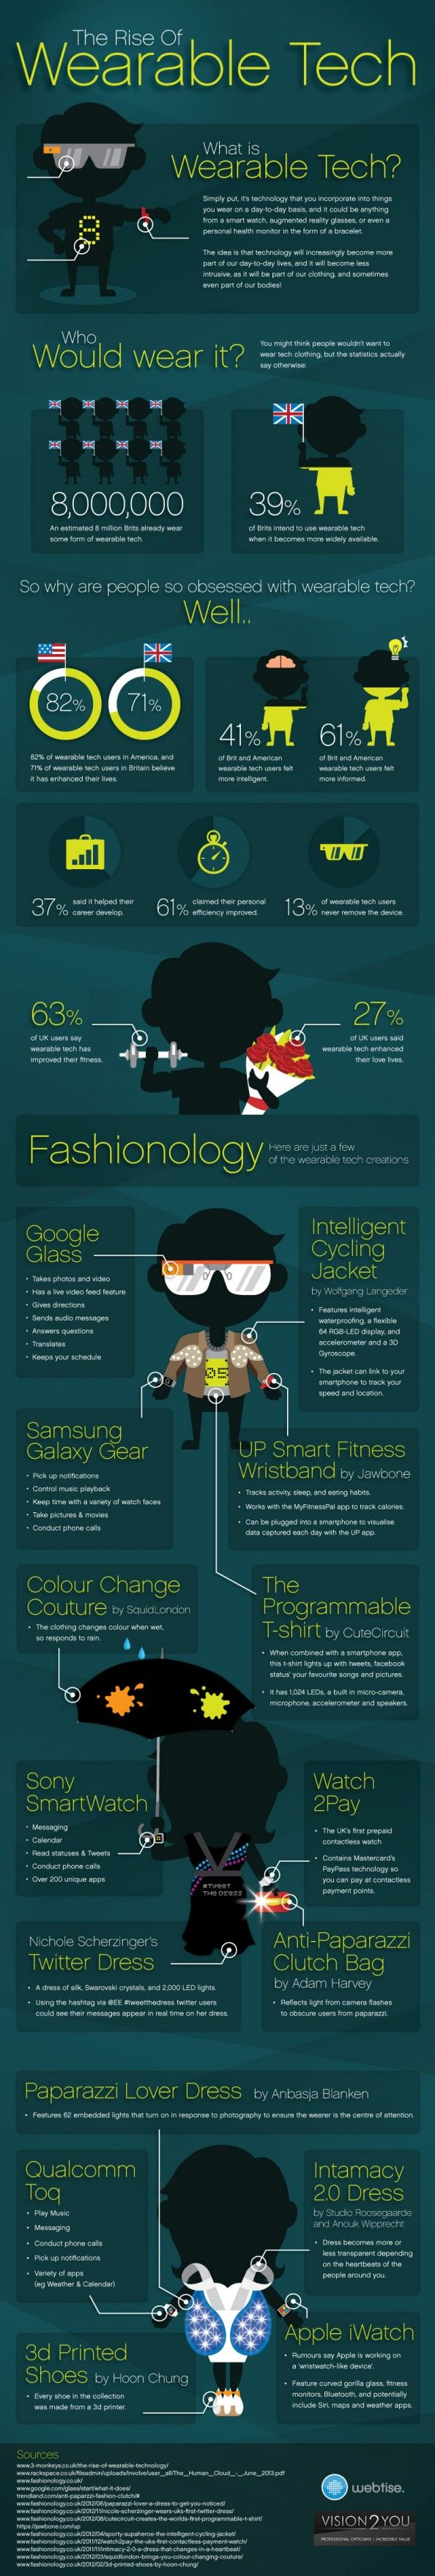 The Rise of Wearable Tech #infographic